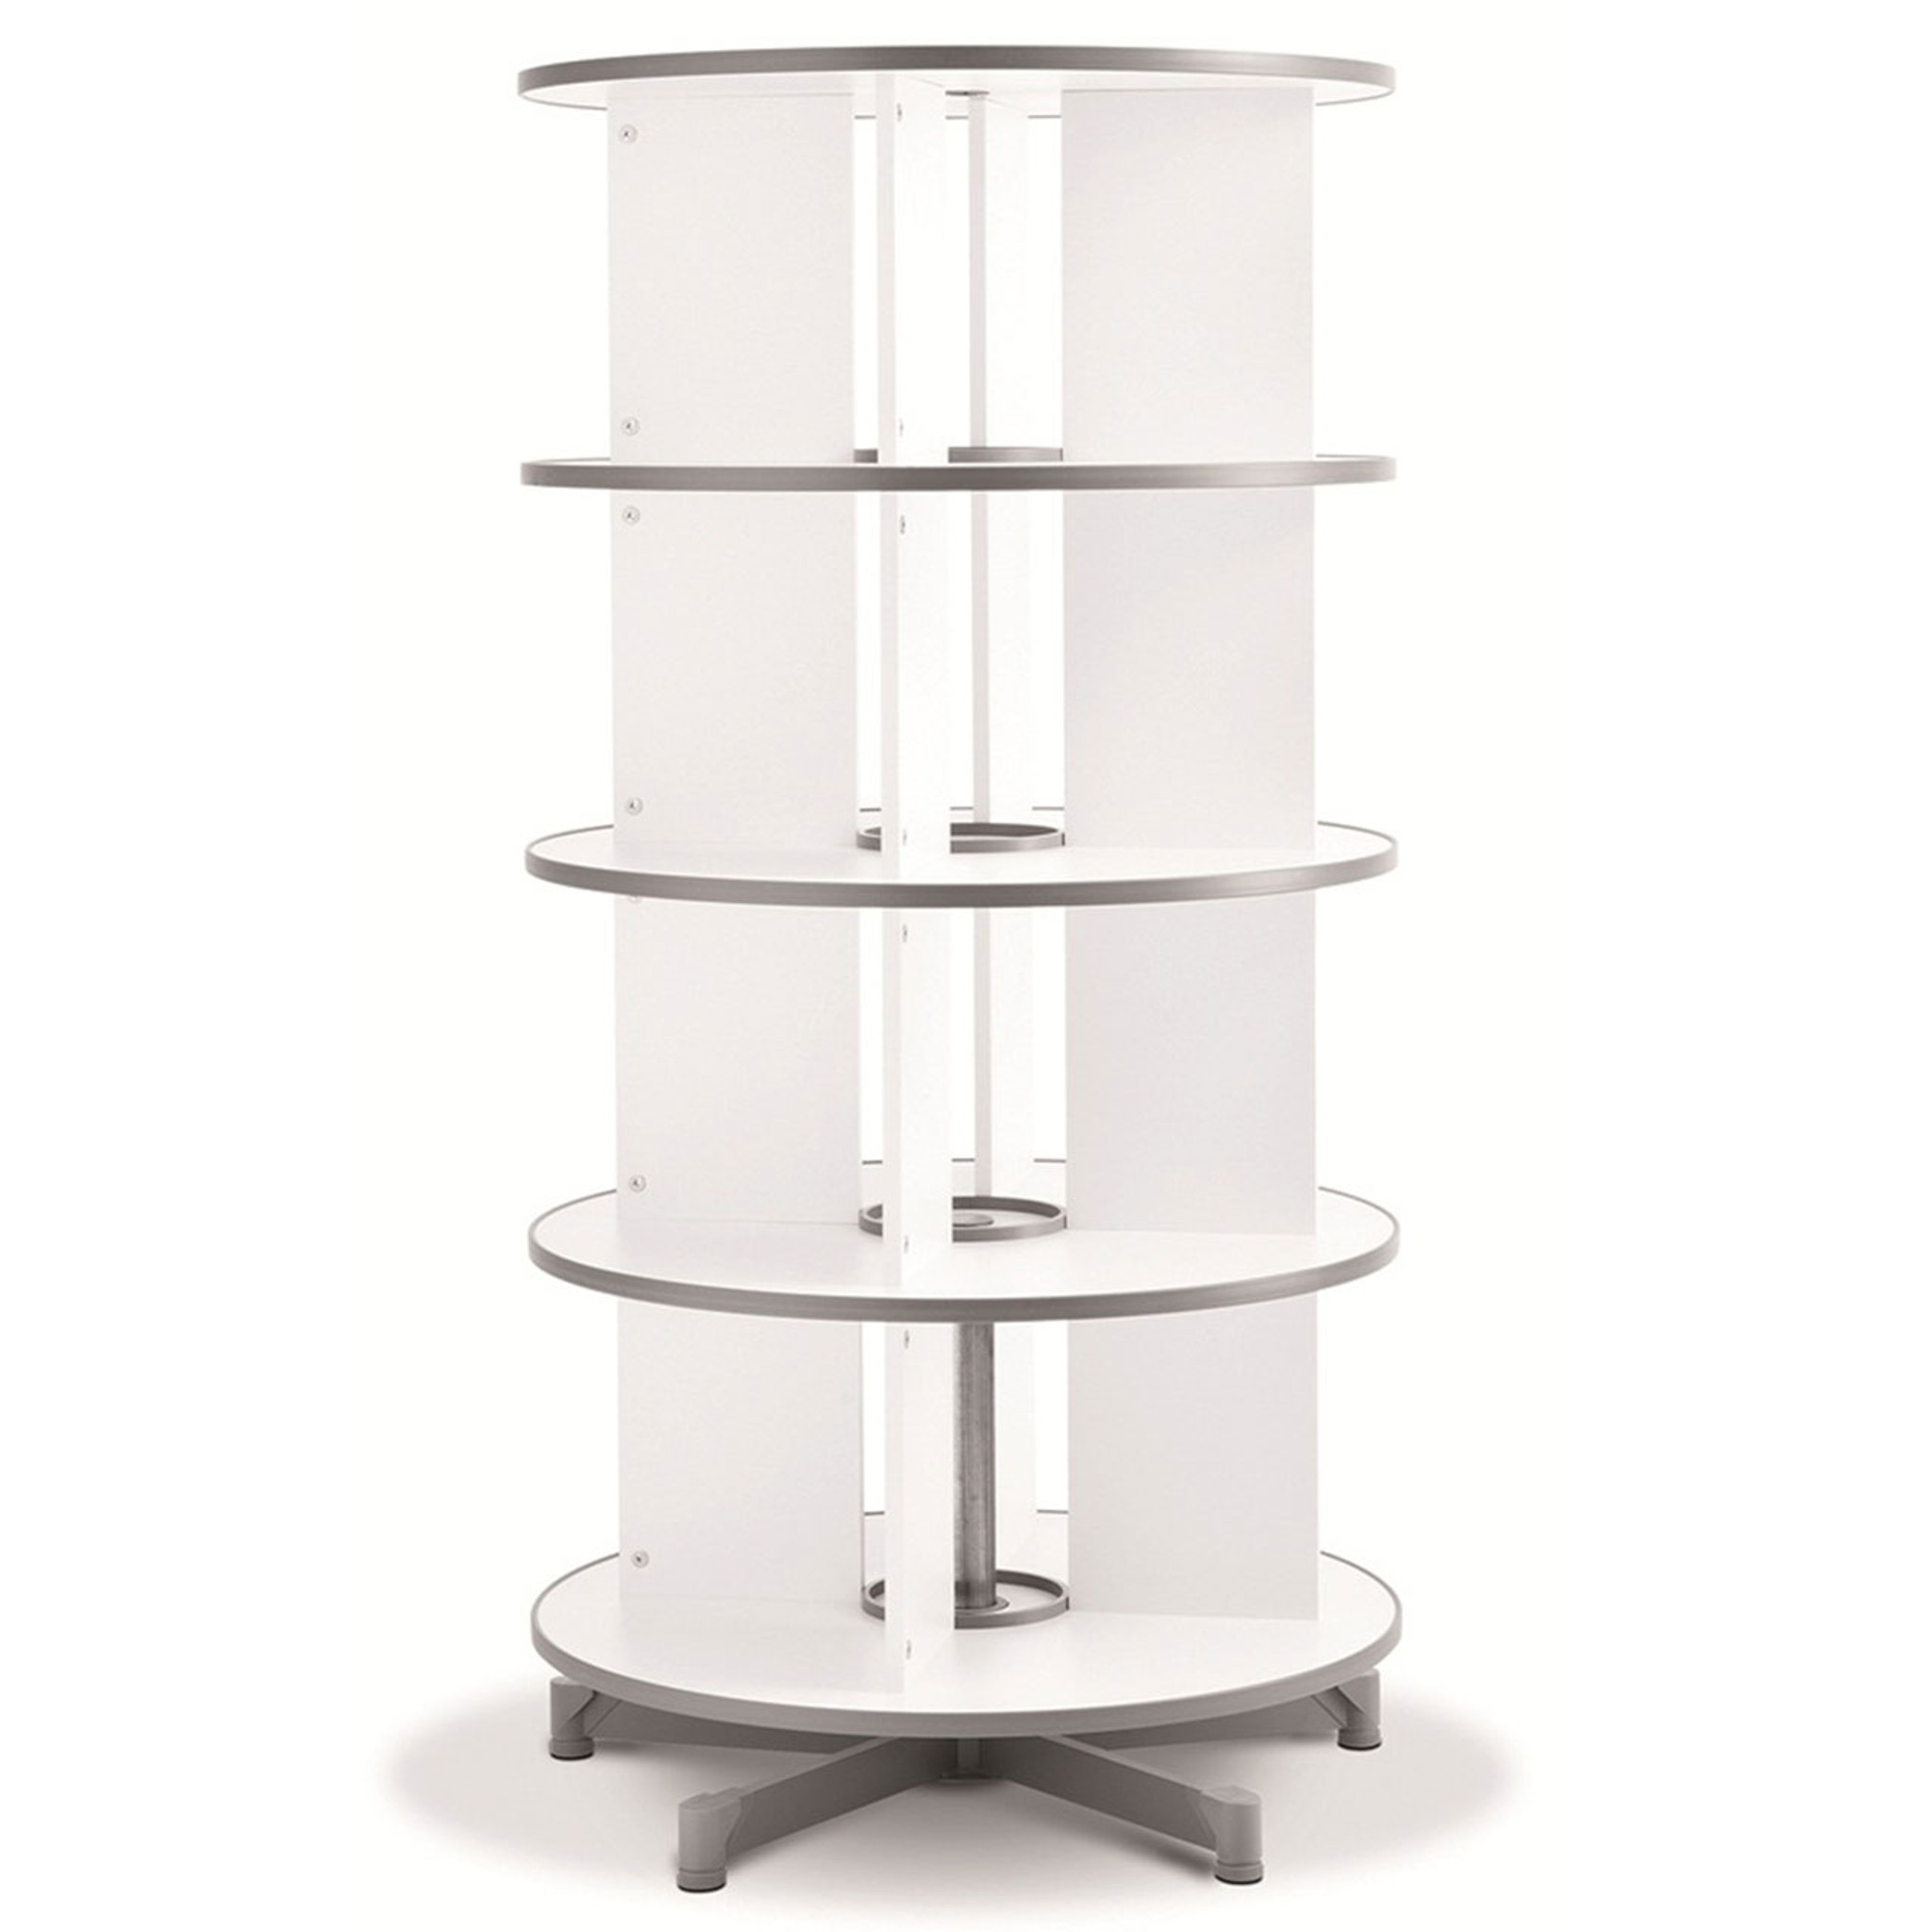 Moll One Turn Binder & File Carousel, 4-Tier Shelving